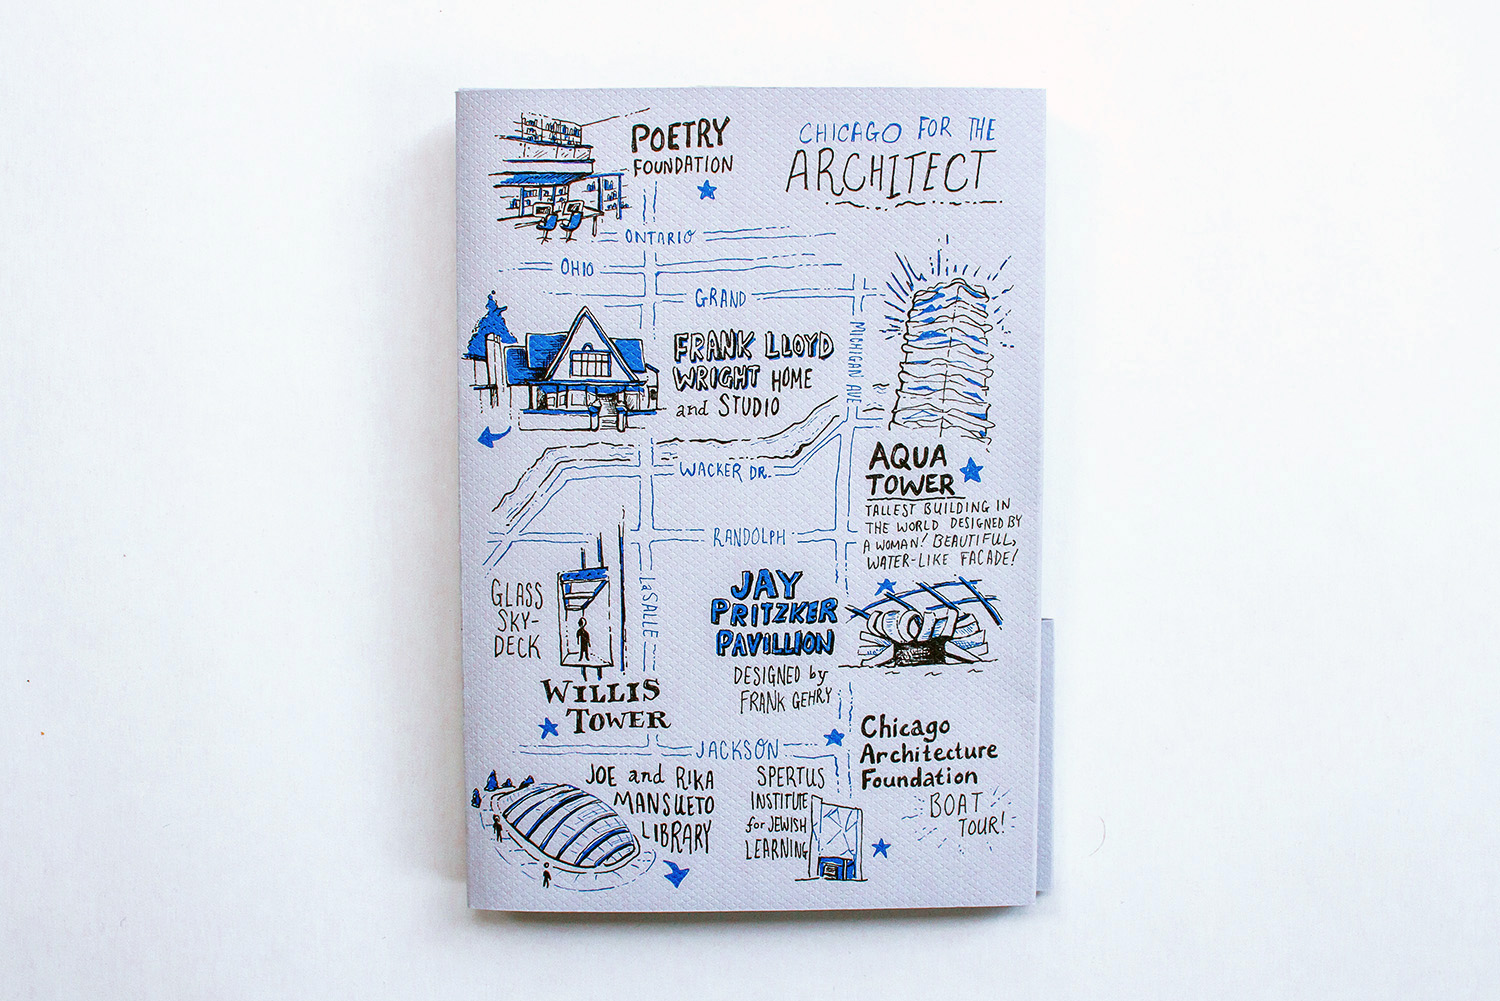 Illustrated map of Chicago for architects and architecture enthusiasts and fans, featuring the poetry foundation, frank lloyd wright home and studio, aqua tower, jay pritzker pavillion, willis tower, spertus institute for jewish learning, joe and rika mansueto library, and the chicago architecture foundation.